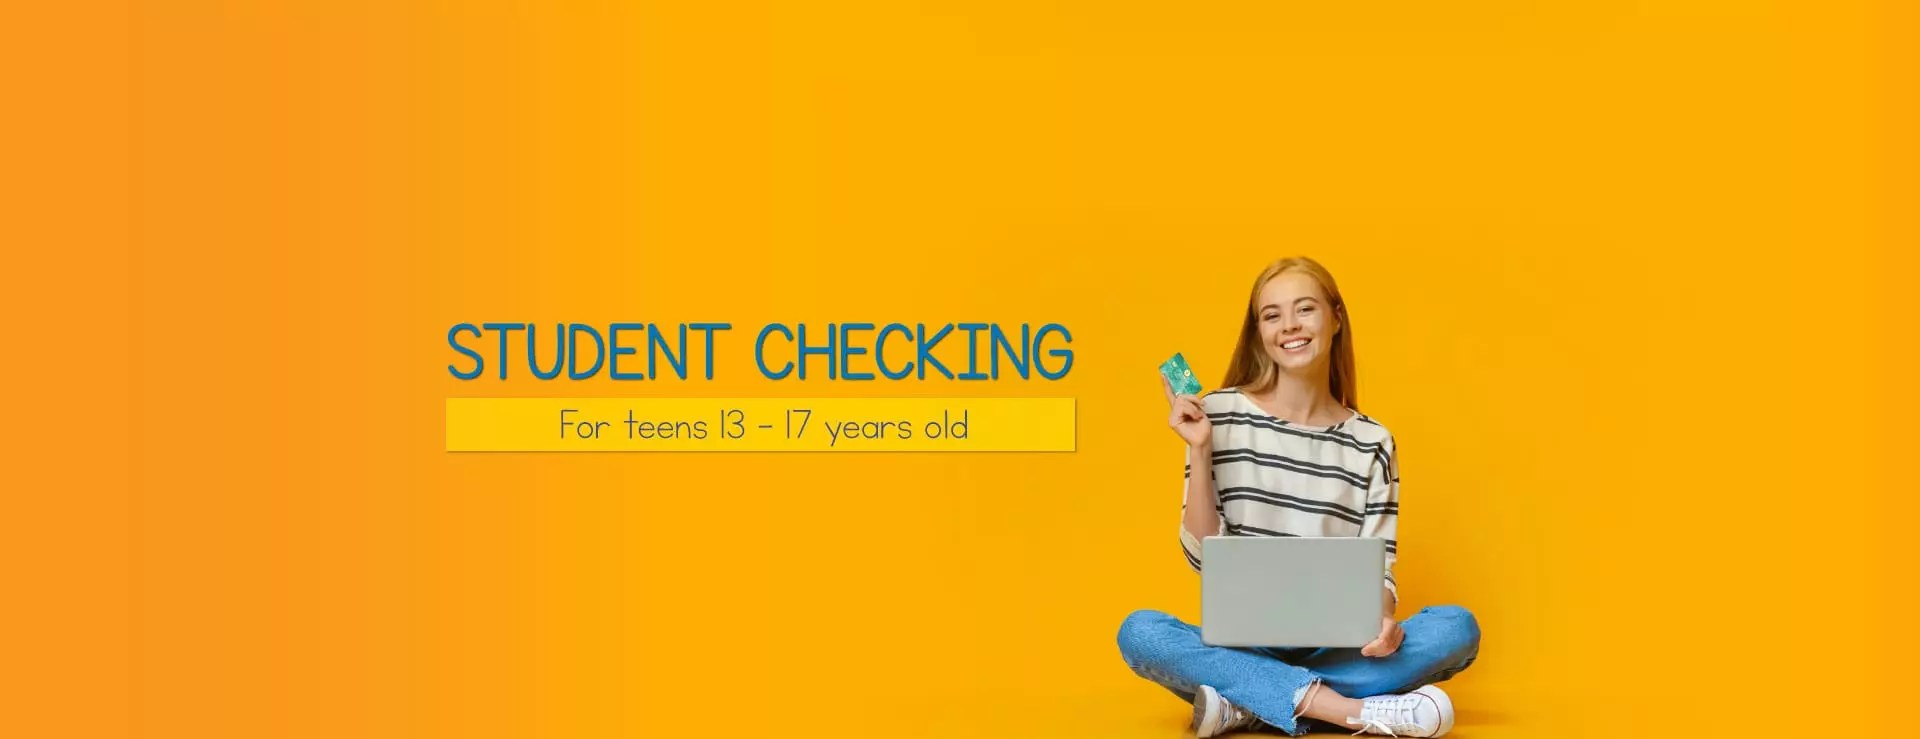 ym-student-checking-web-min